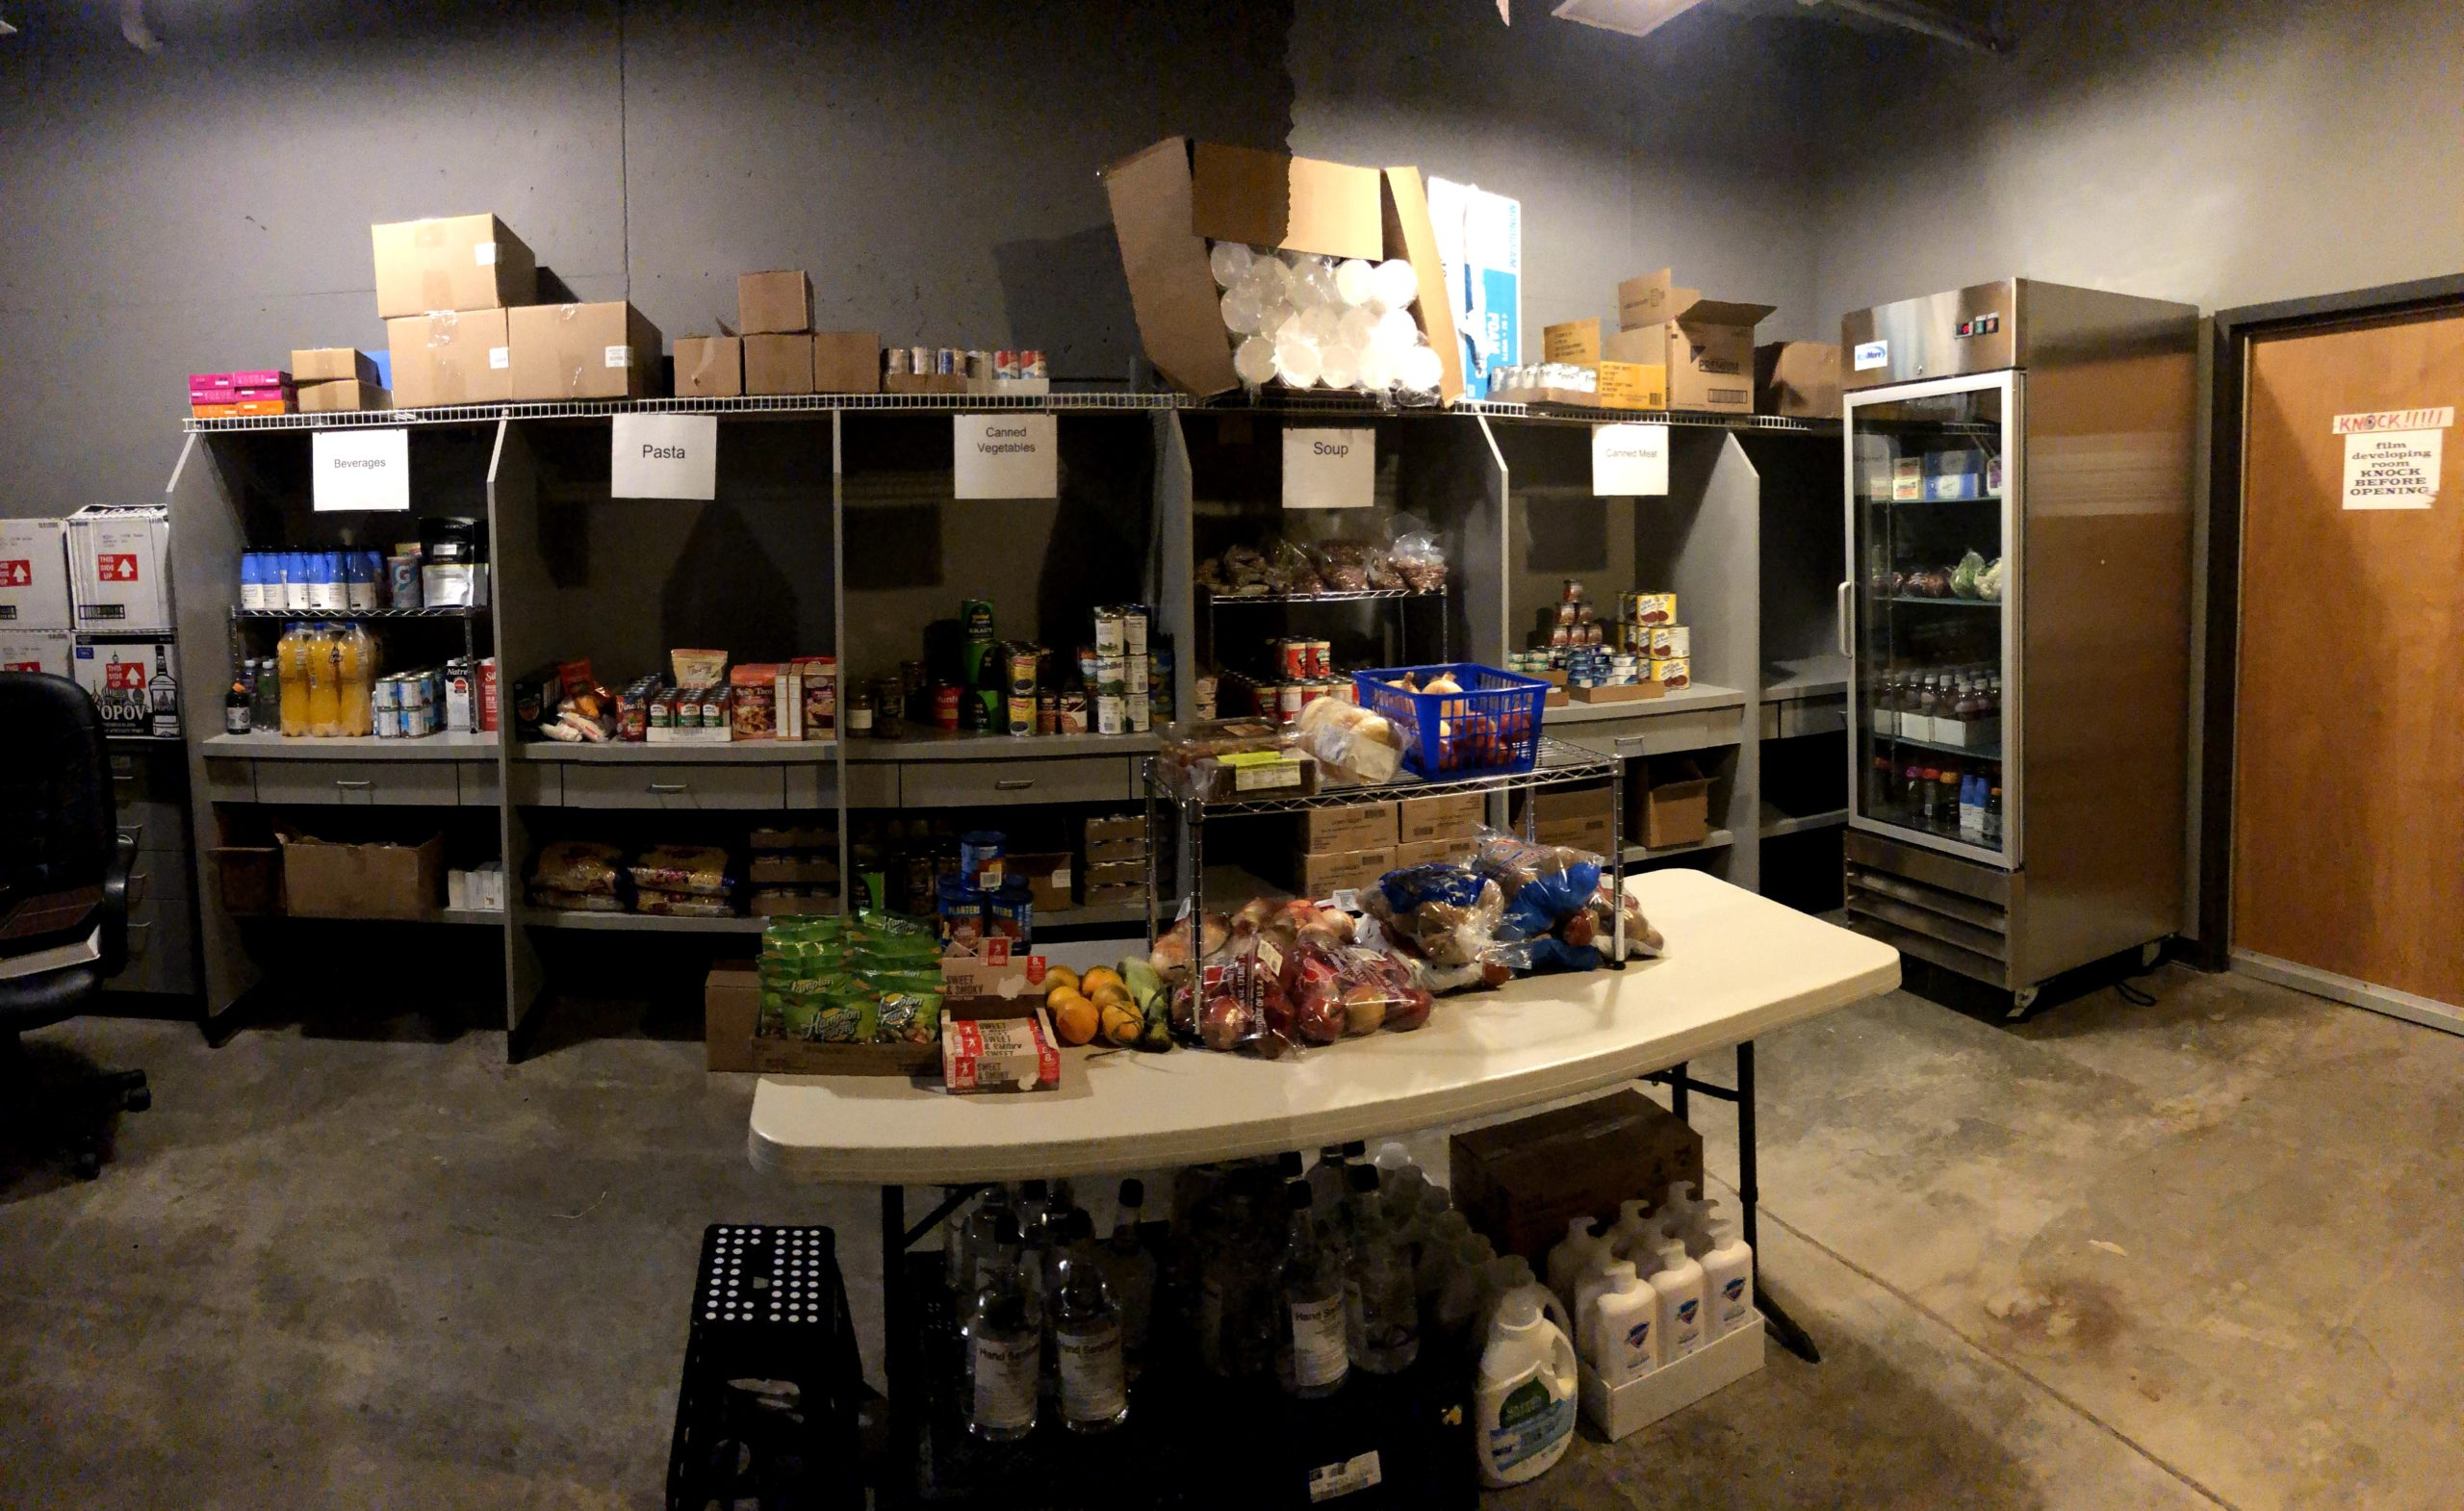 Image of community pantry